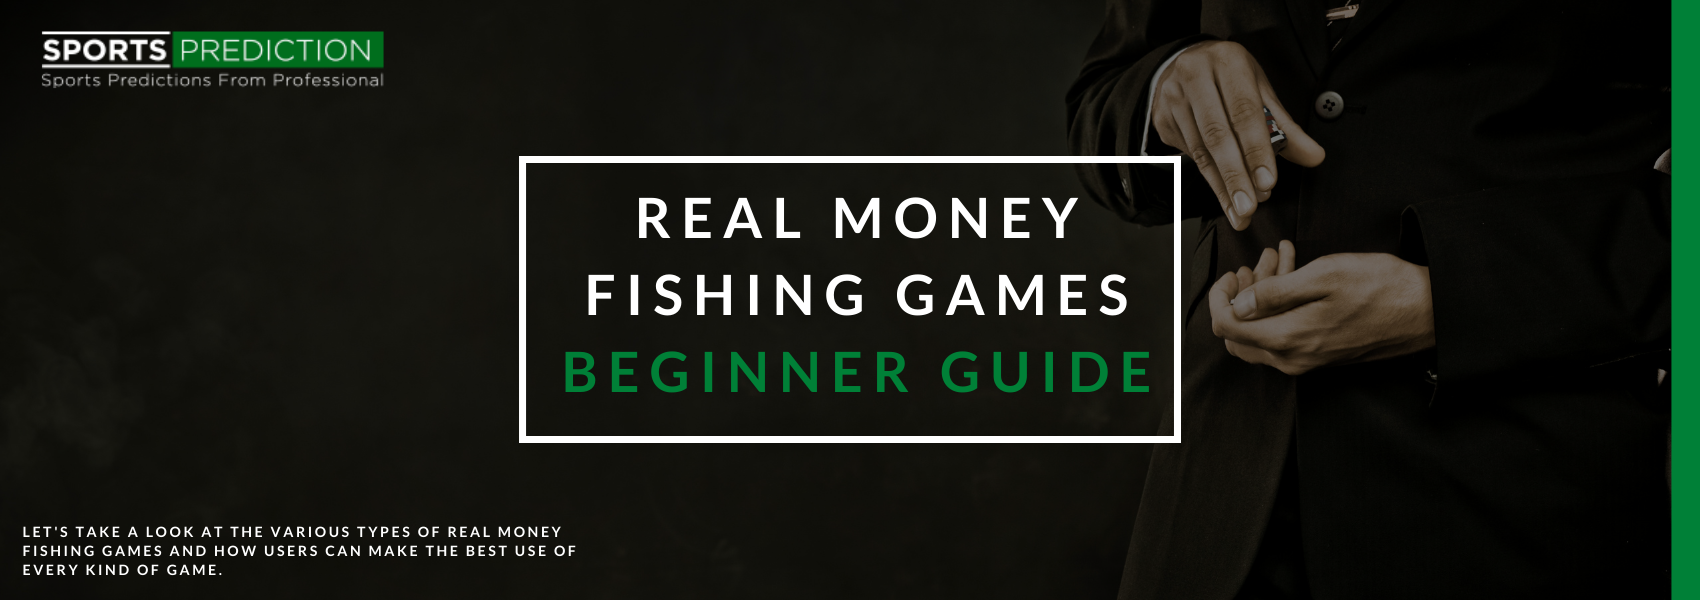 Real Money Fishing Games Beginner Guide - How To Play